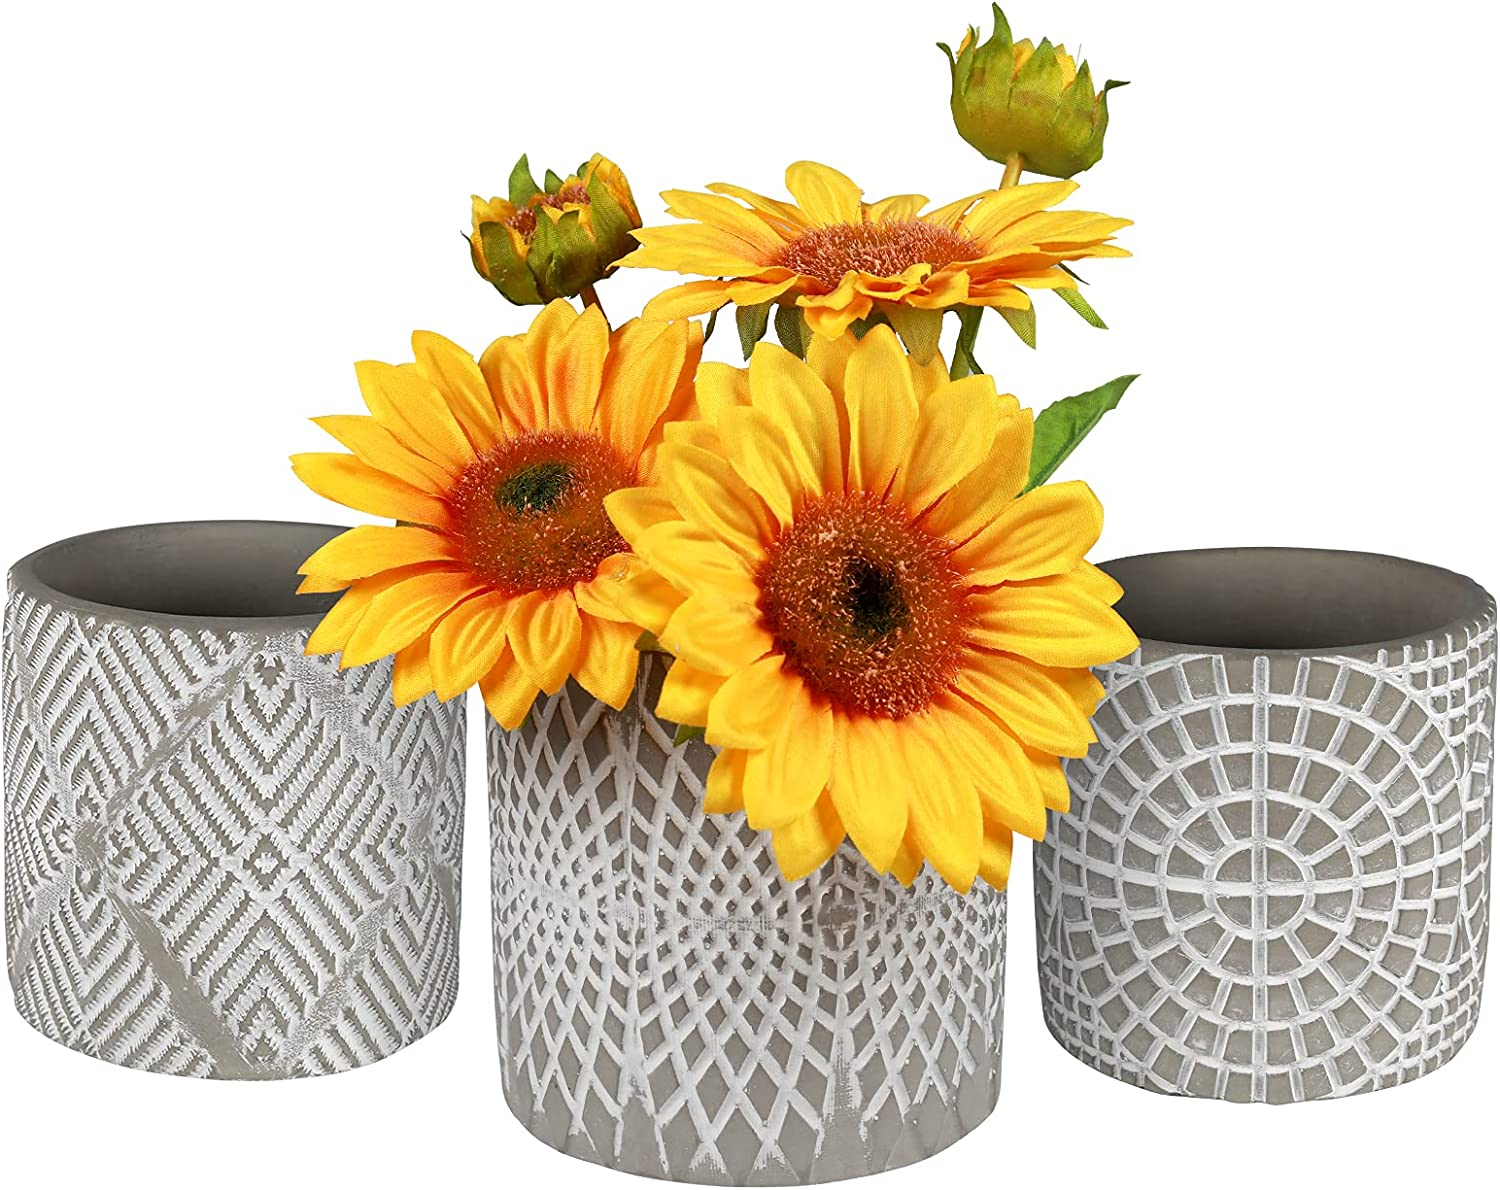 SOPHSEAG Cement Succulent Pots - 4 inch Small Concrete Flower Pot Cactus Planters Container, 3 Pack Modern Plant Vase with Drainage Hole for Indoor Outdoor Planting and Decor